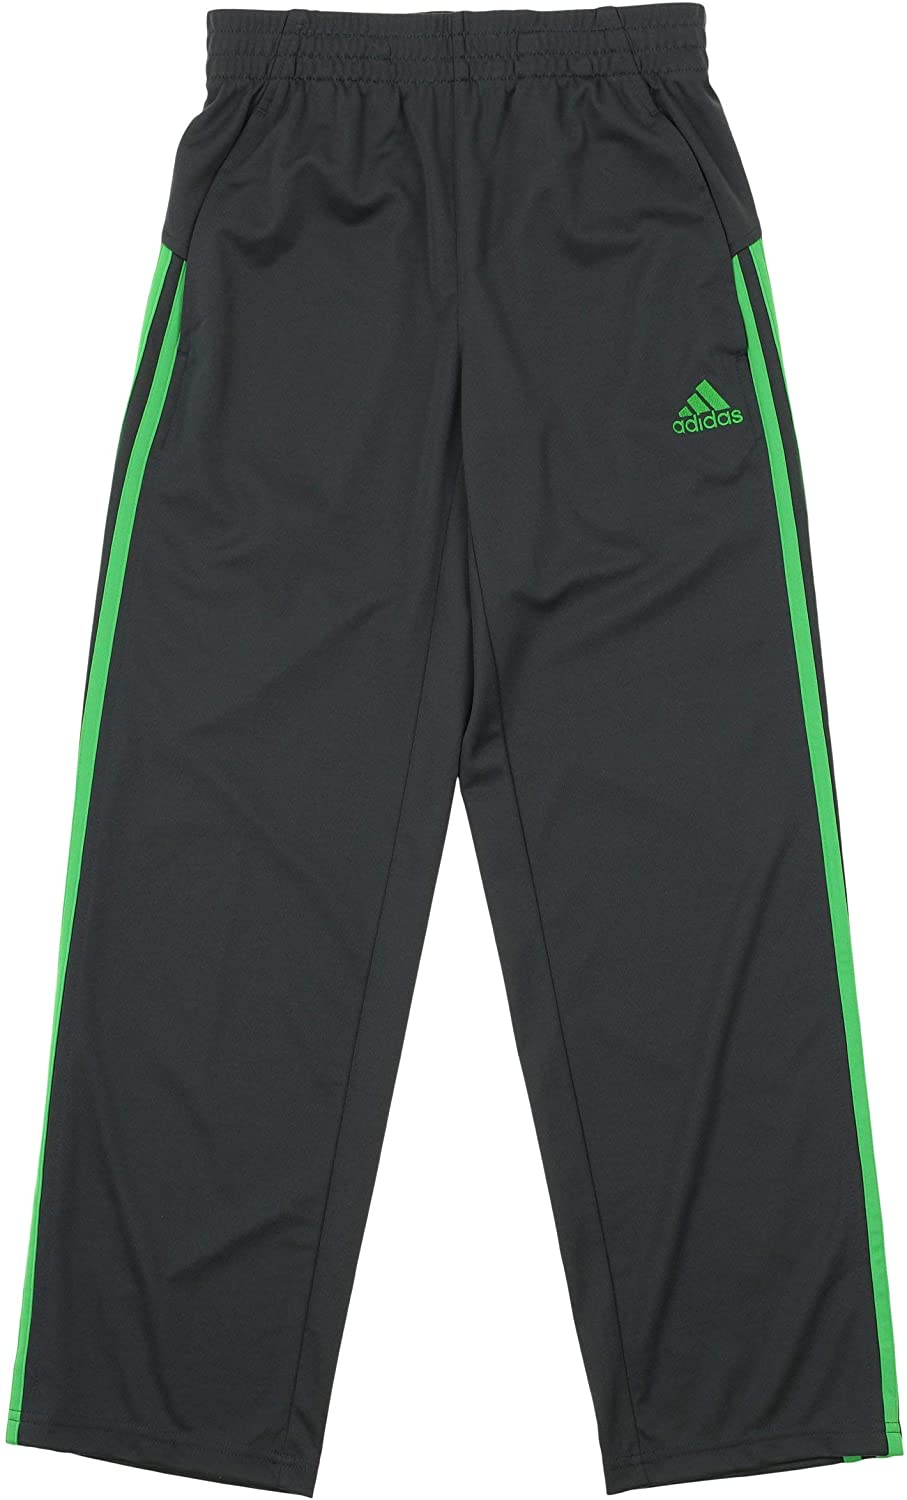 adidas Boy's Athletic Loose Core Pants,Grey/Lime Large (14/16)